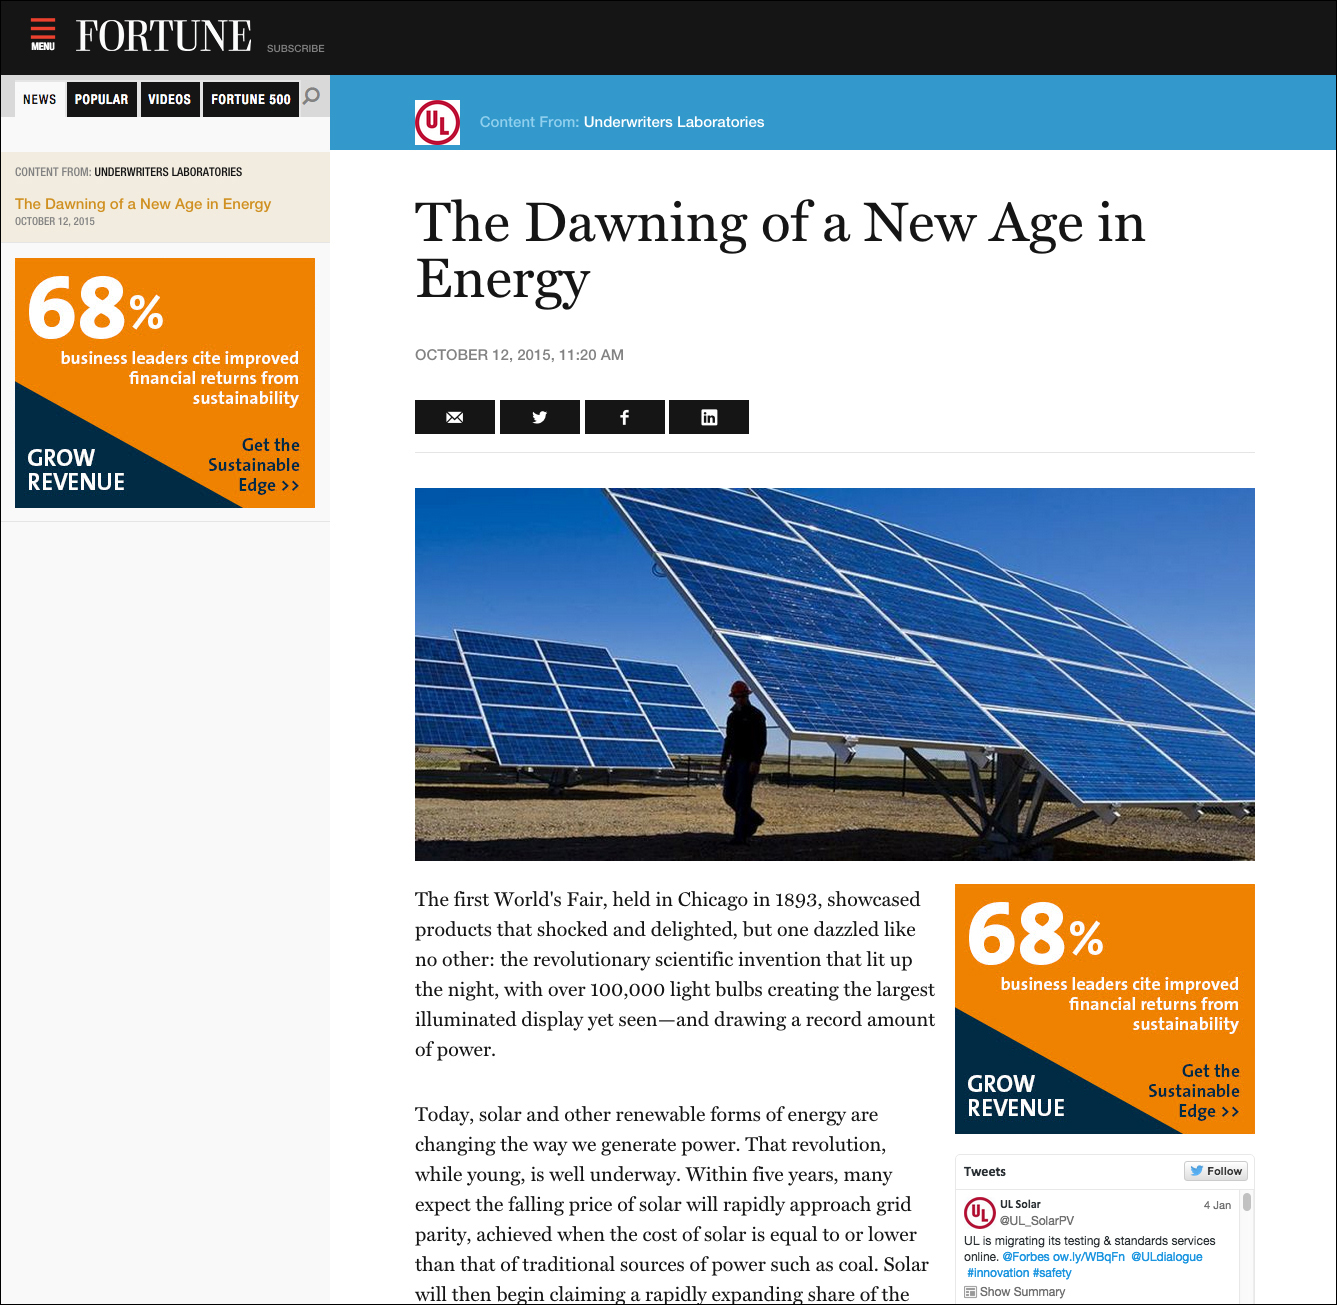 The Dawning of a New Age in Energy - Time Inc  Content